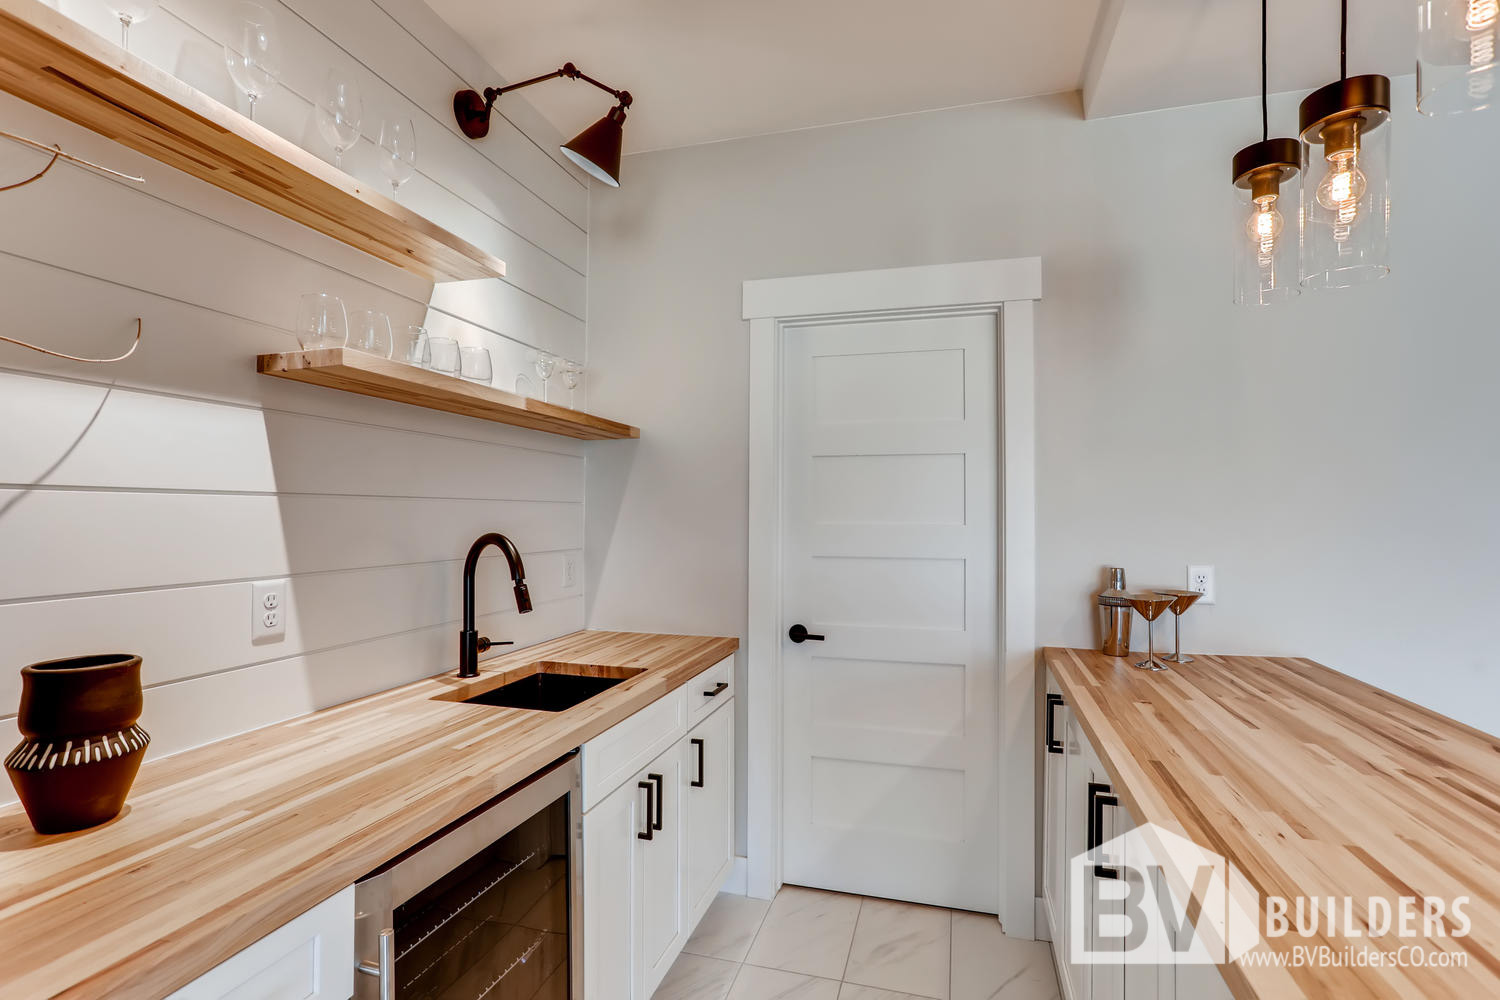 Butcher block wet bar with floating shelves, shiplap backsplash and bar sink